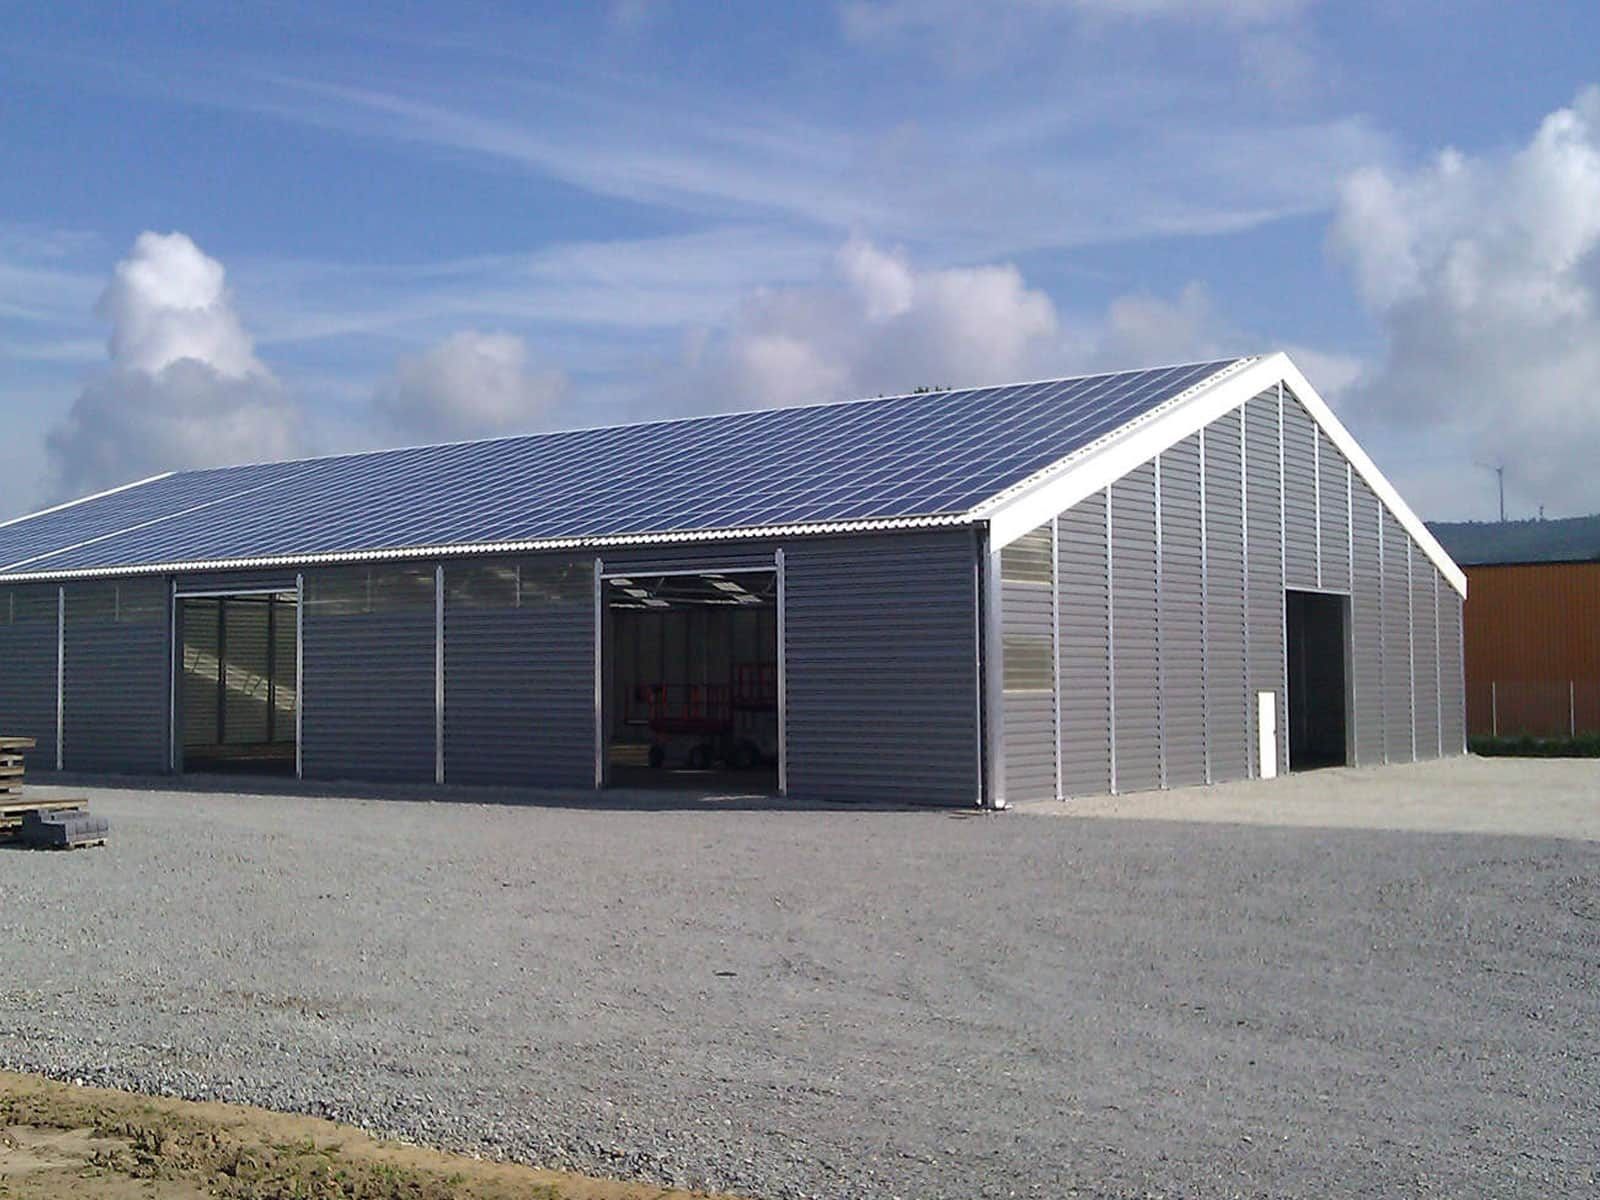 Construction Of Steel Buildings: Steel Roofed Temporary Buildings